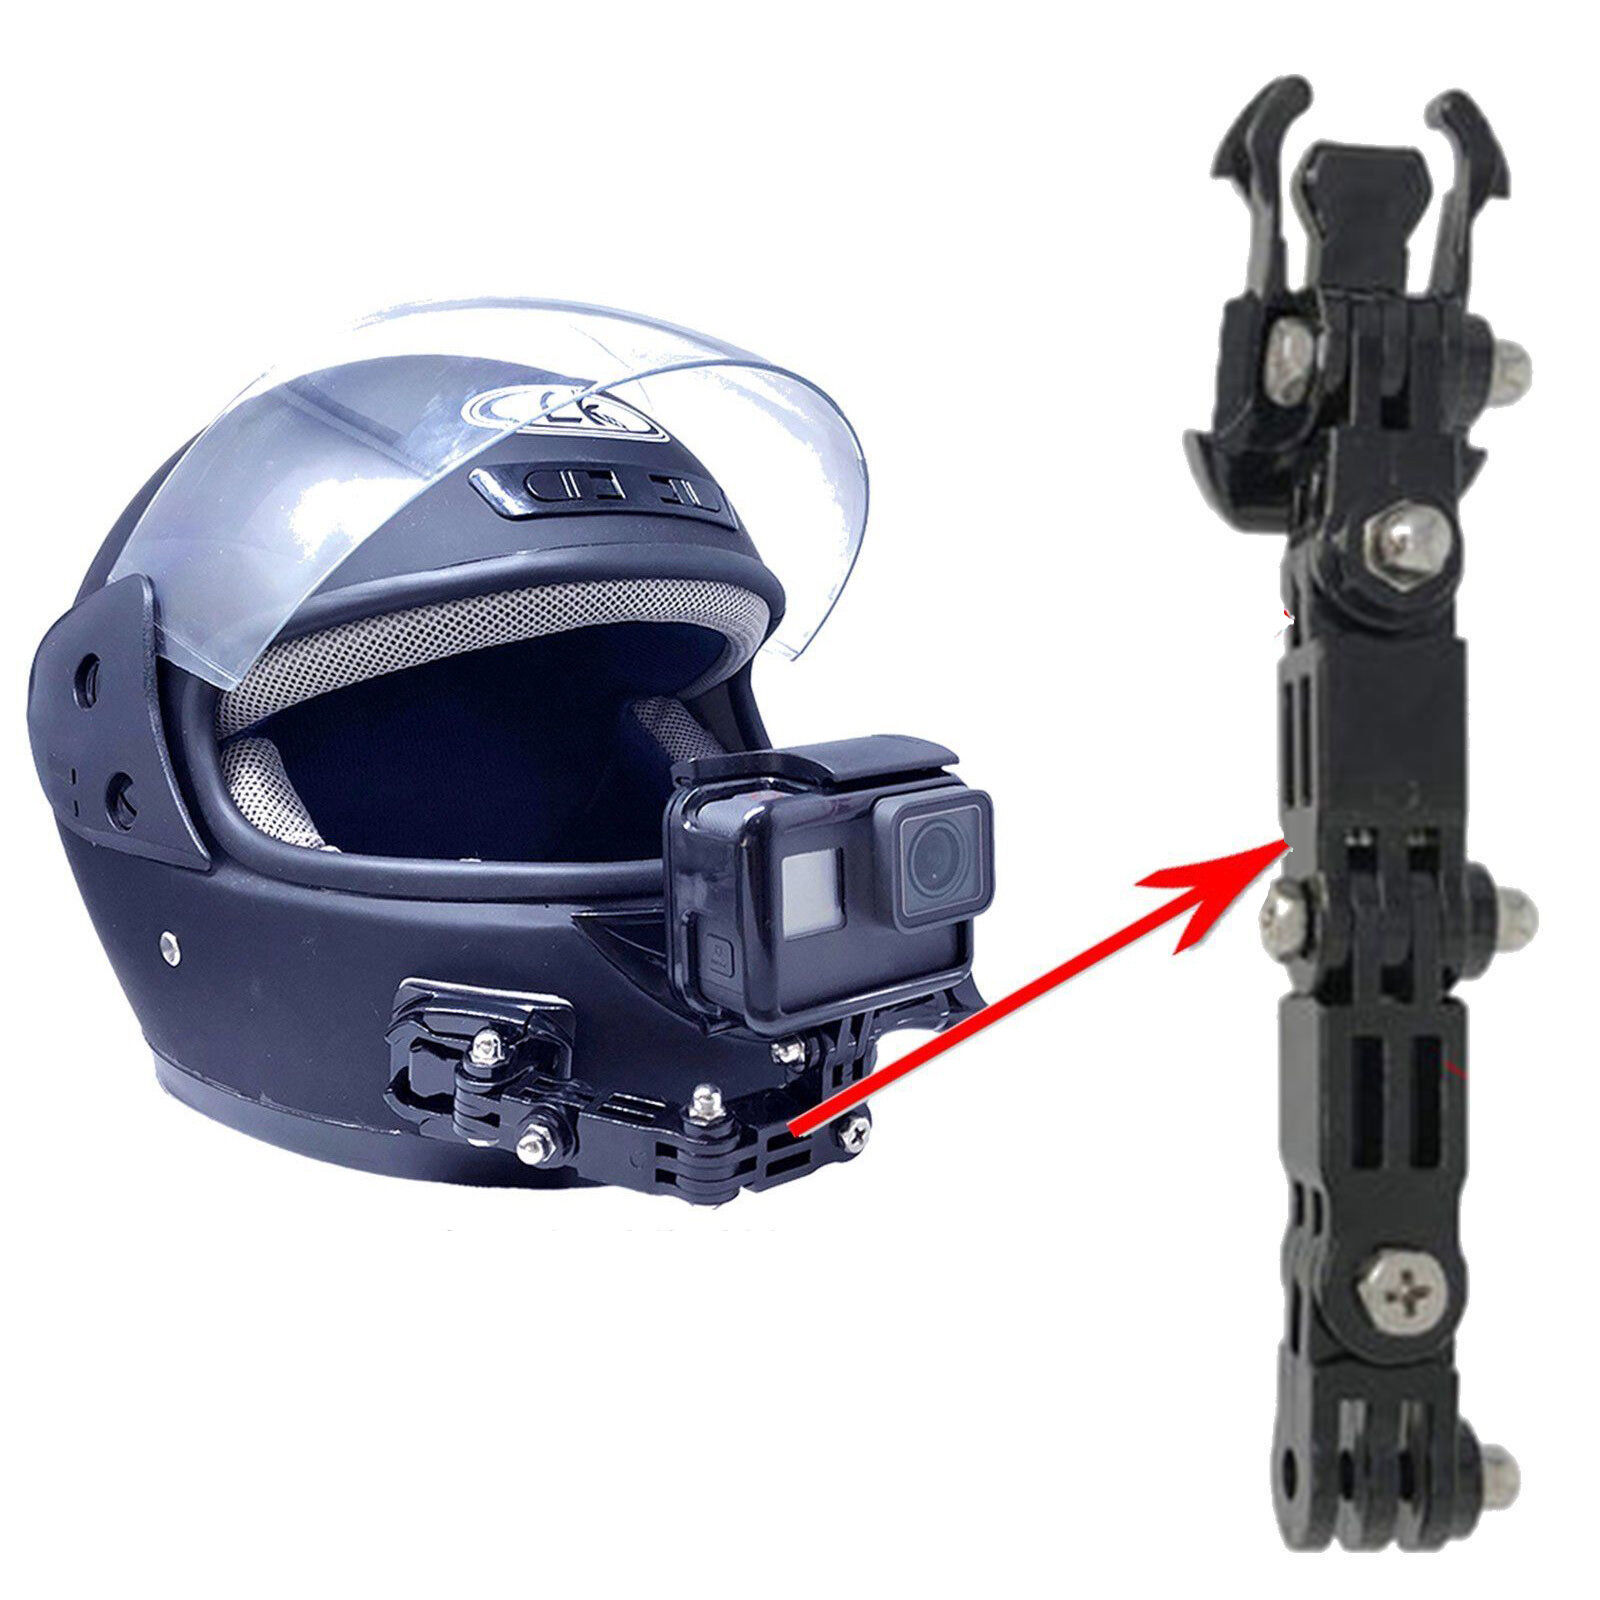 GoPro and Other Cameras Sincecam Front Helmet Face Mount Set for SC128Pro Action Camera Includes Curved Surface Mount Face Shot Mount and Long//Short Angle Attachment Extension